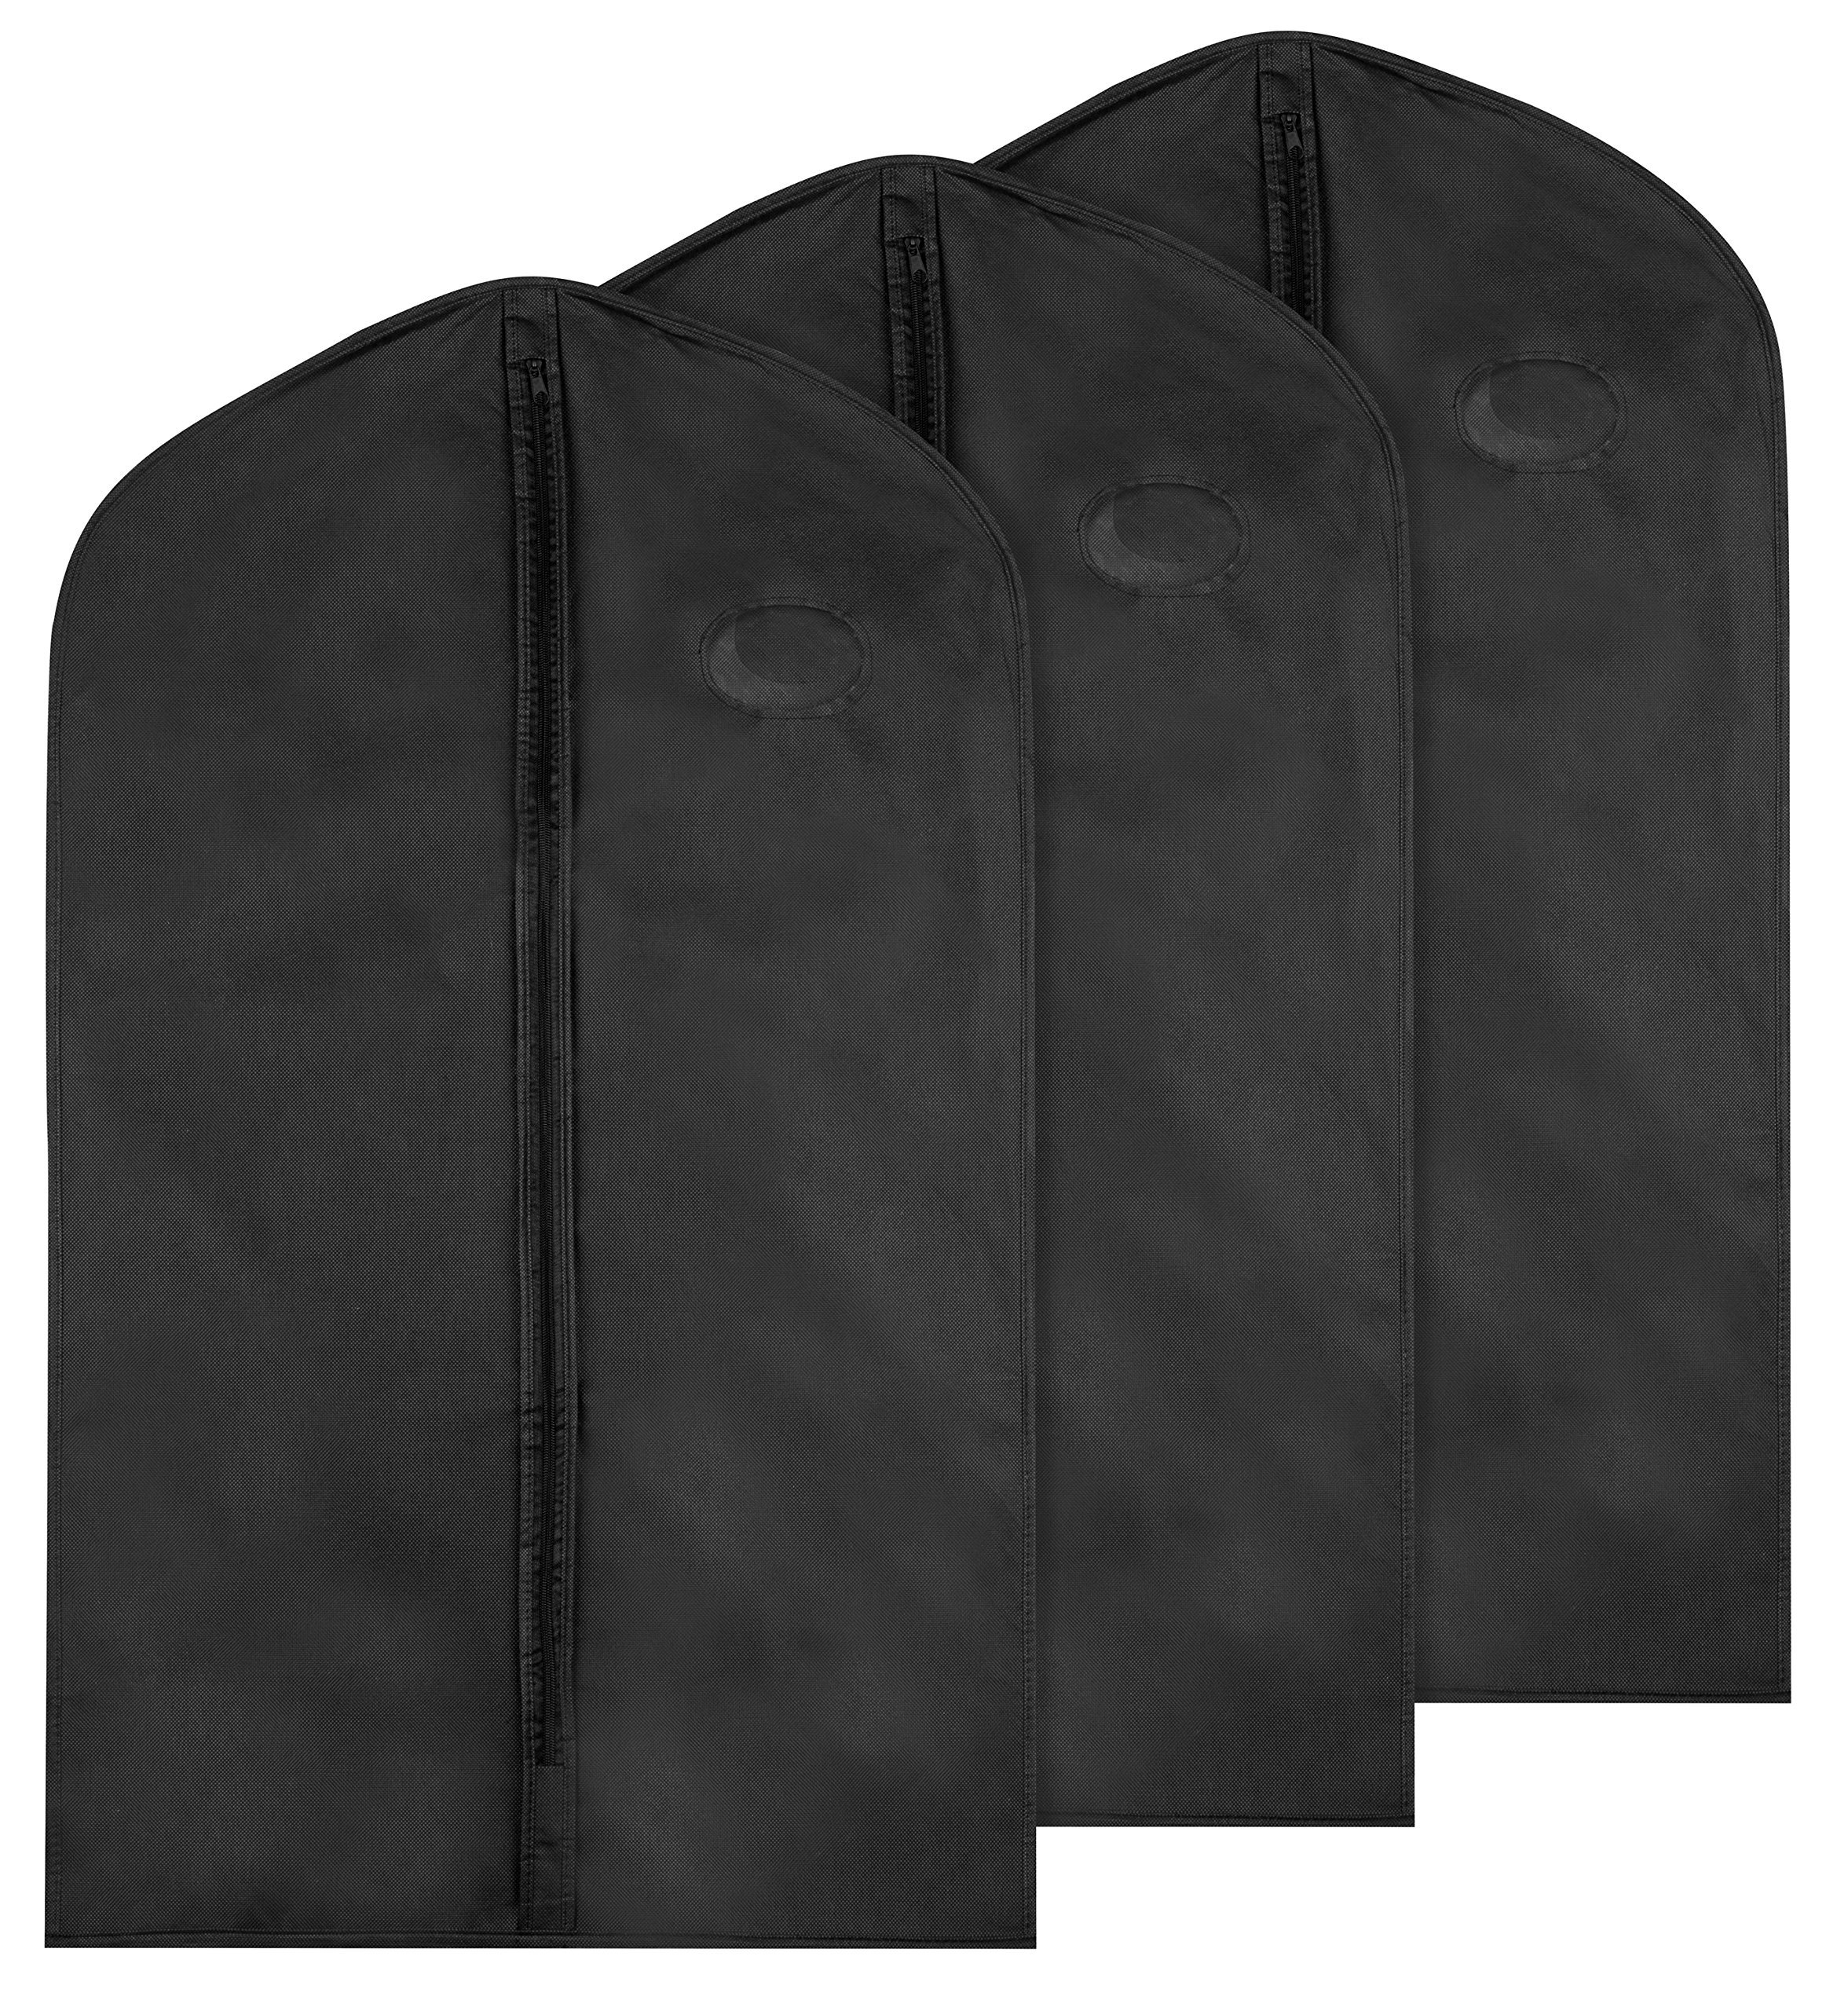 Garment Bag for Storage; Pack of 3 Bags; Keep Your Suit, Costume, Uniform, and Other Clothes Safe